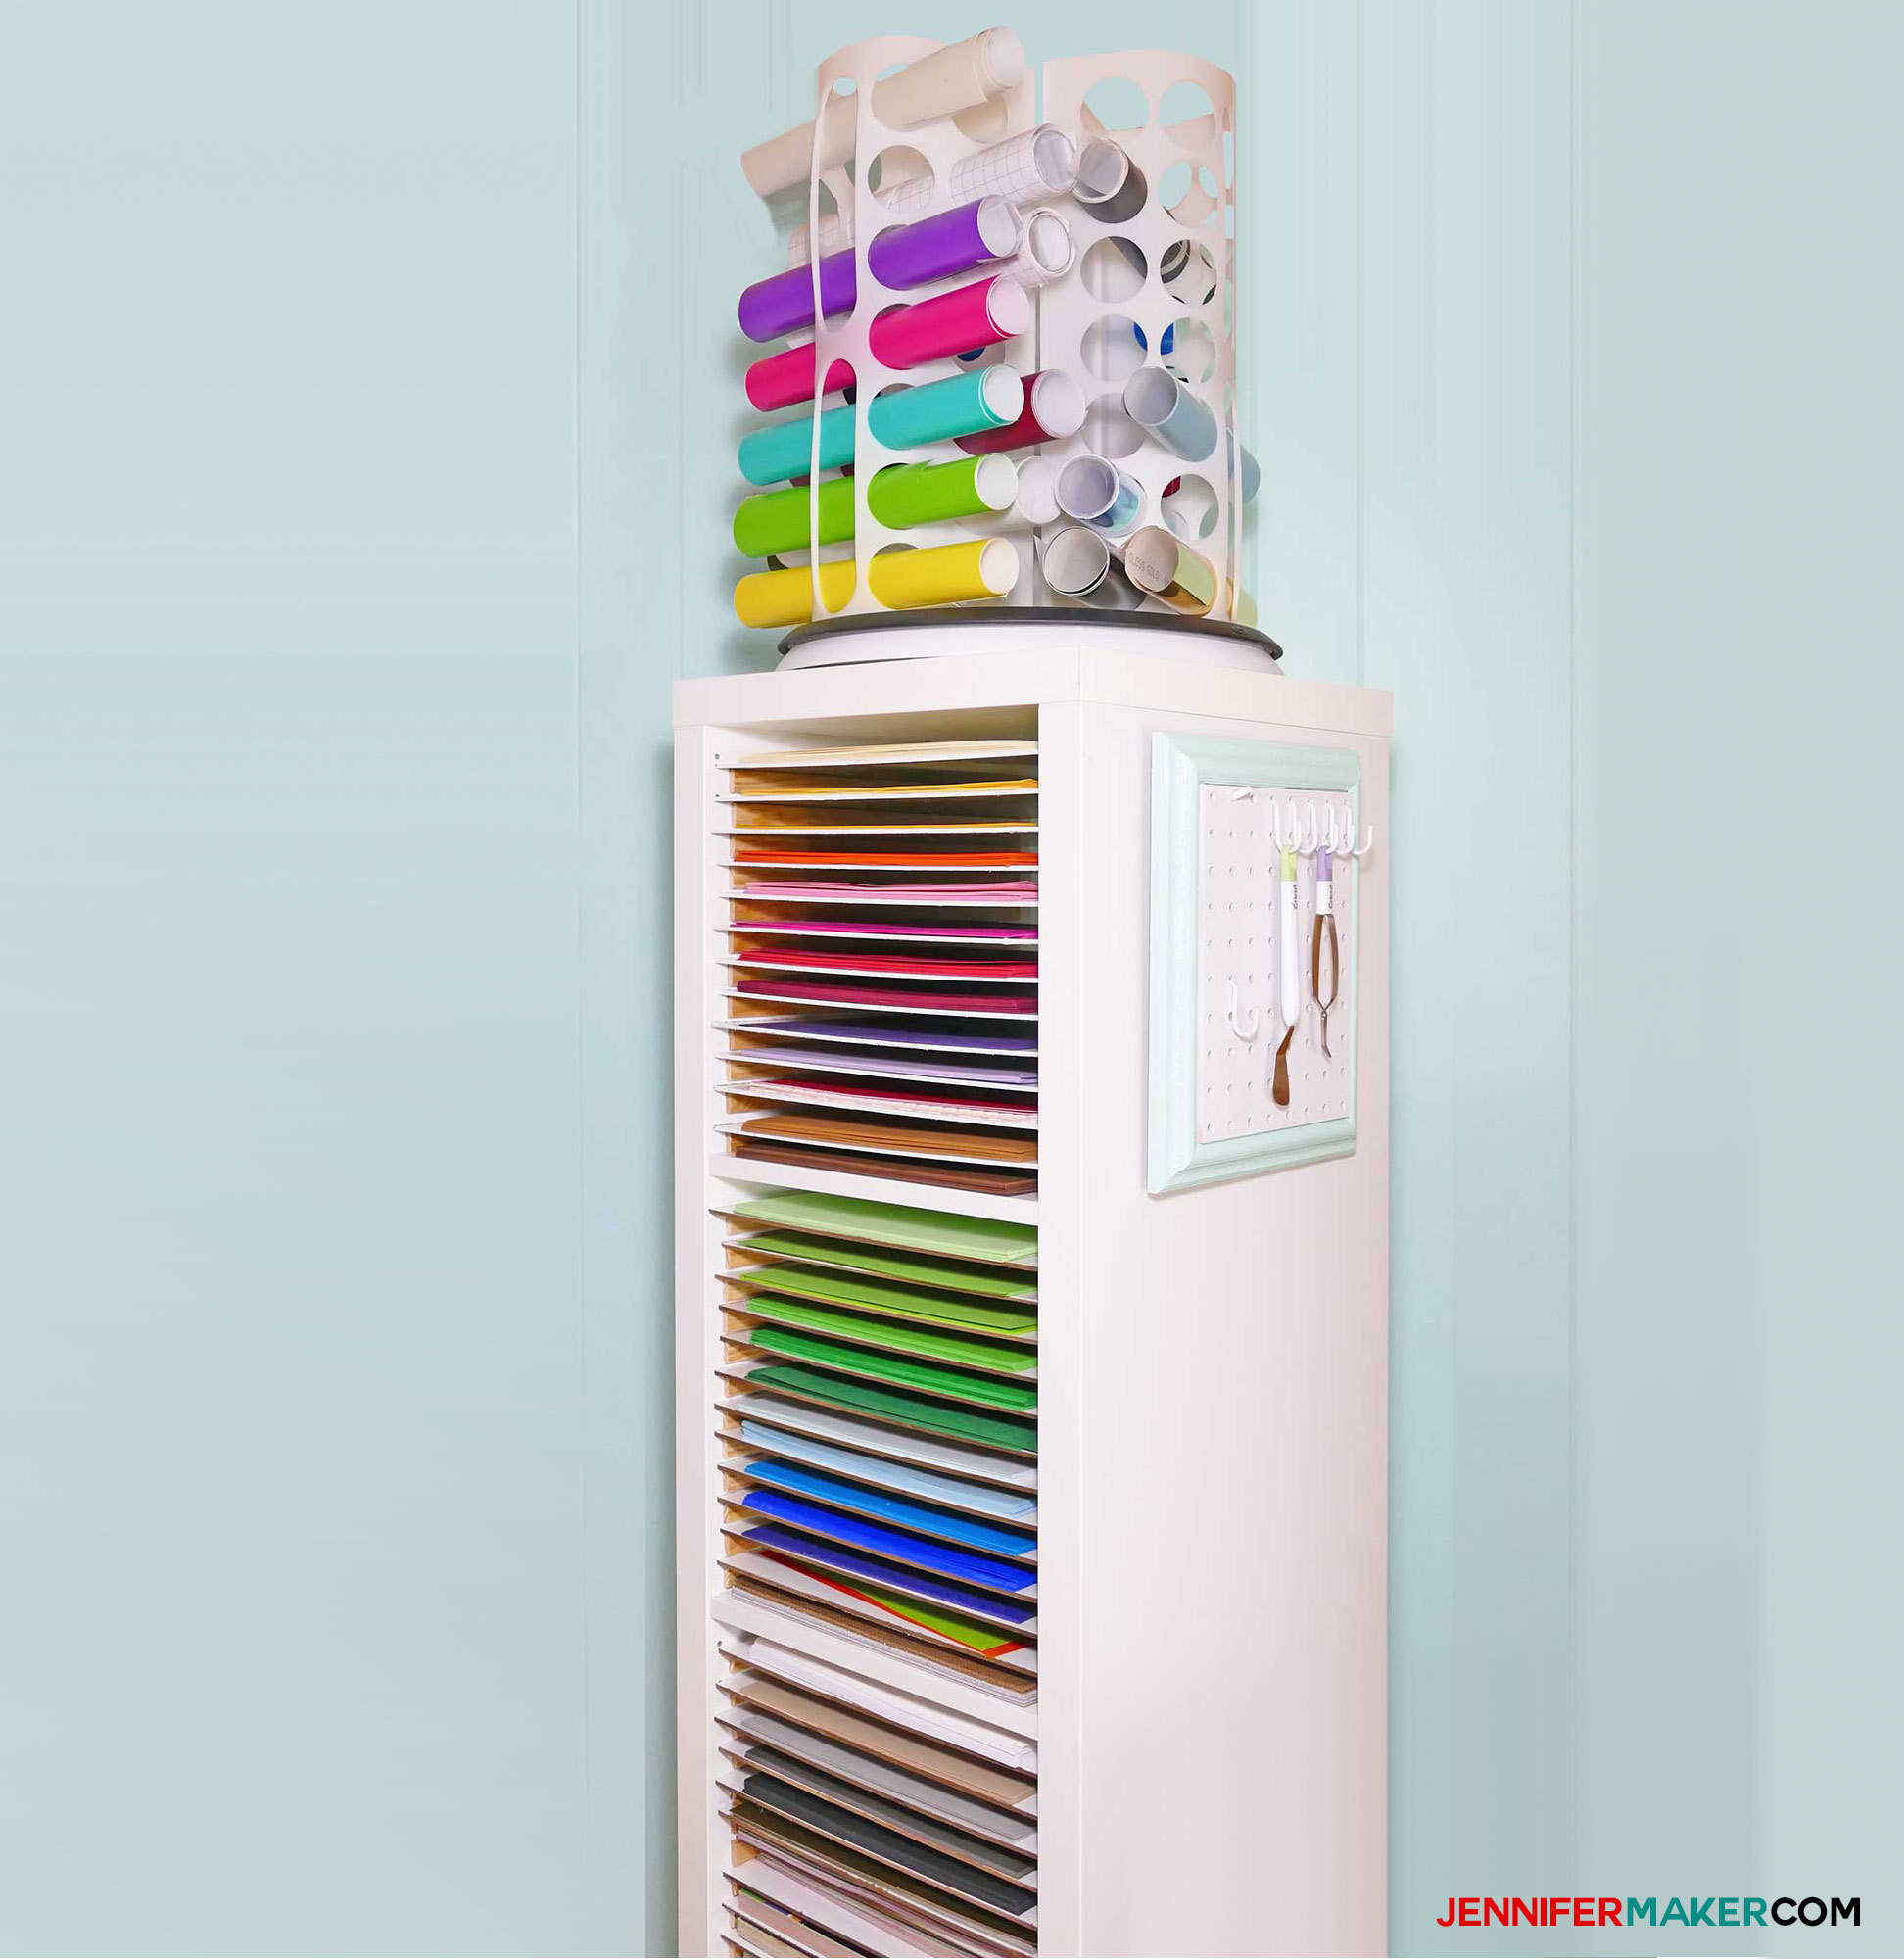 White paper storage tower filled with colorful paper